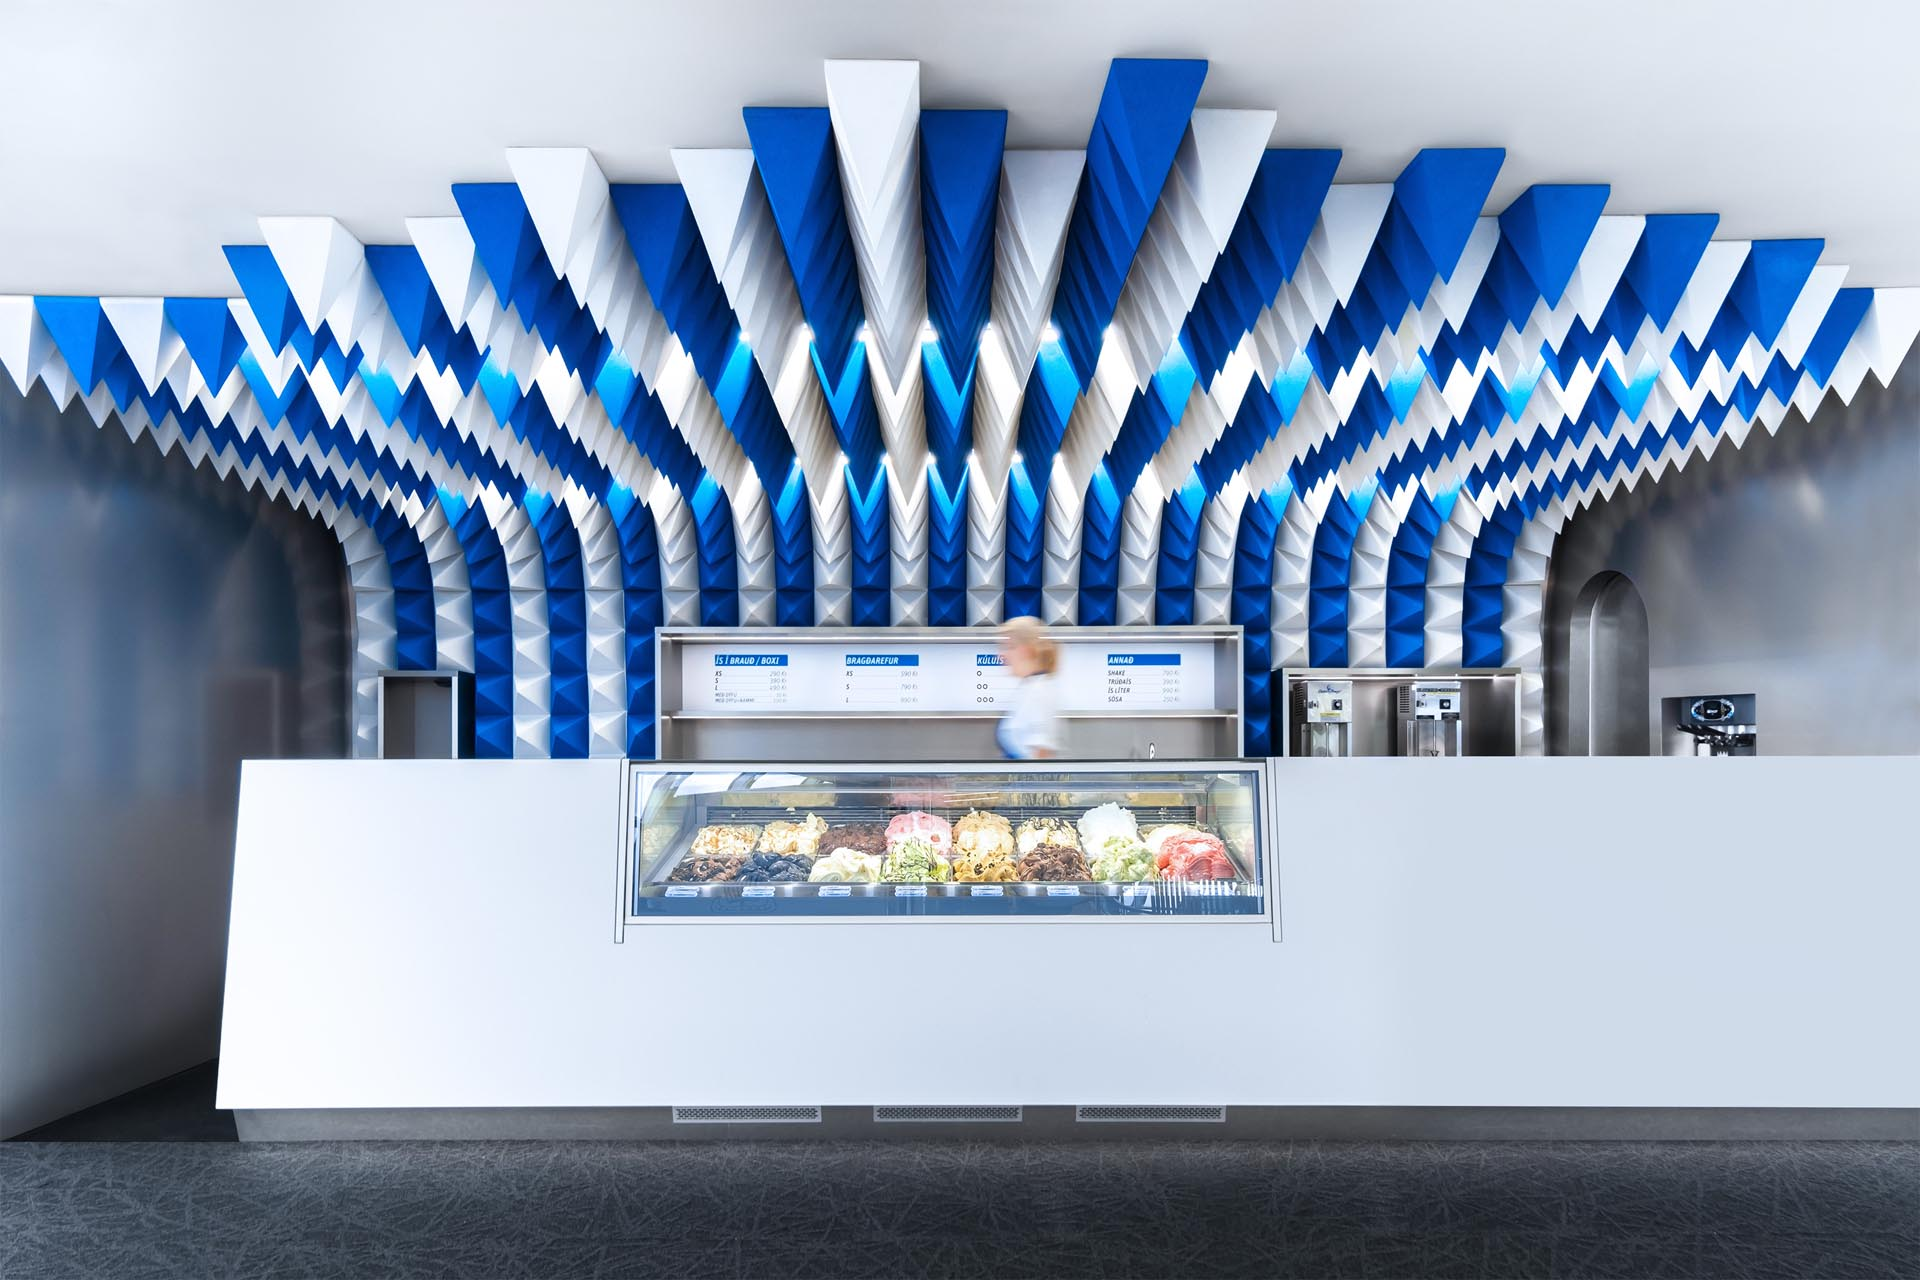 A sculptural ceiling installation made from blue and white foam pyramids.